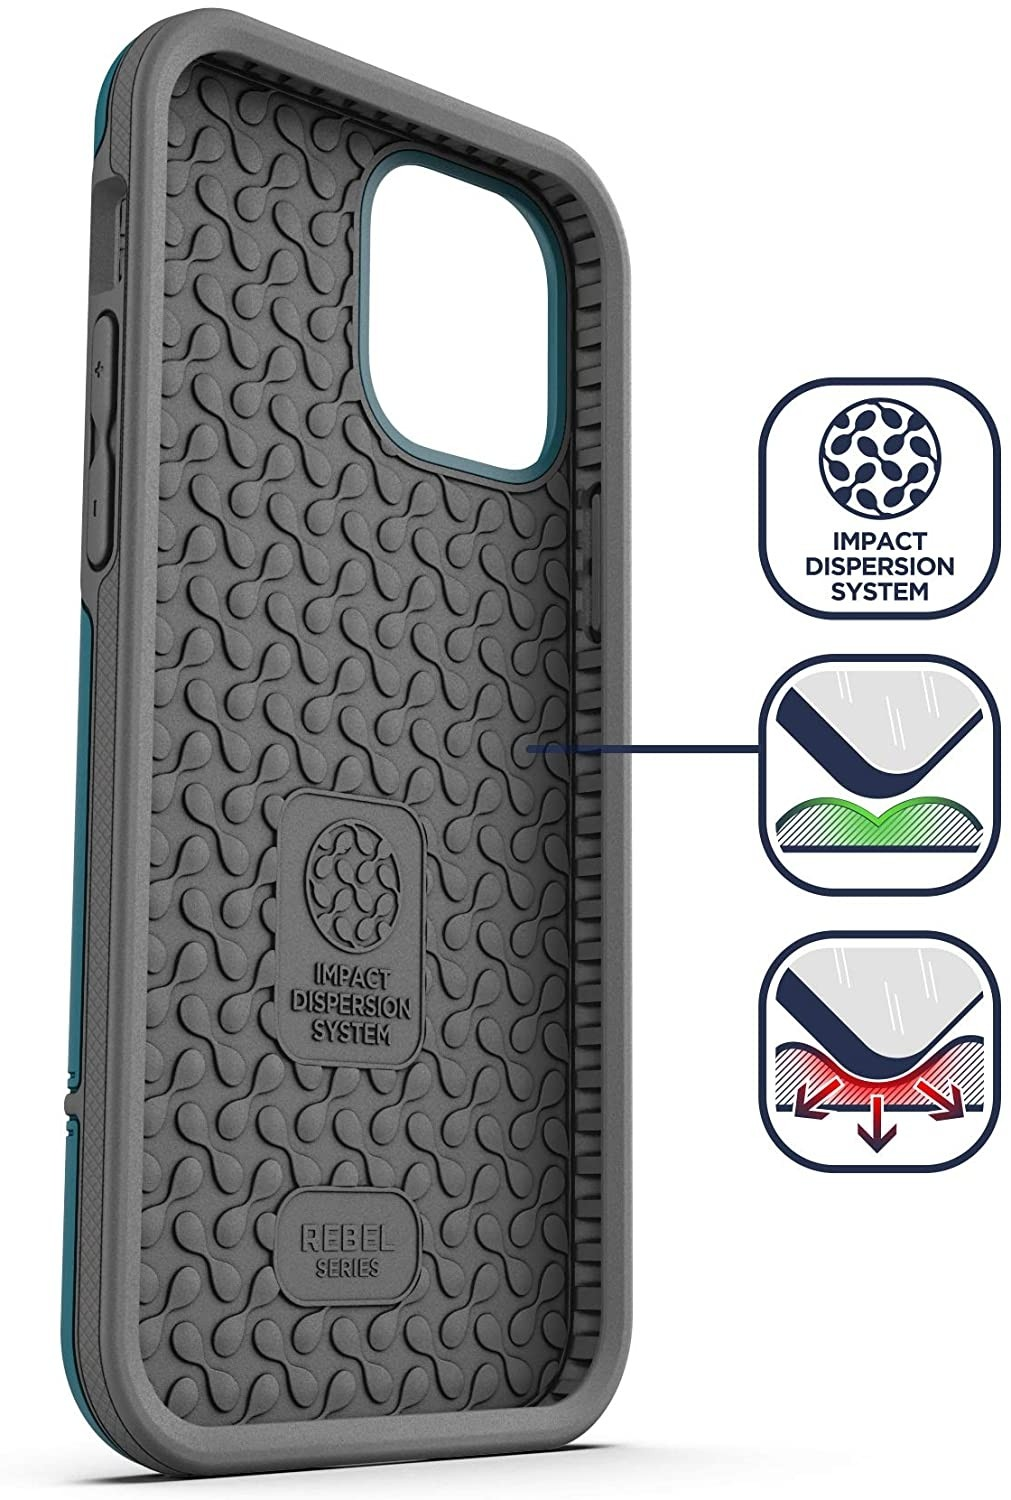 Encased Protective Rebel Series Heavy Duty Case for iPhone 12 Pro Max - Blue, RB129AB